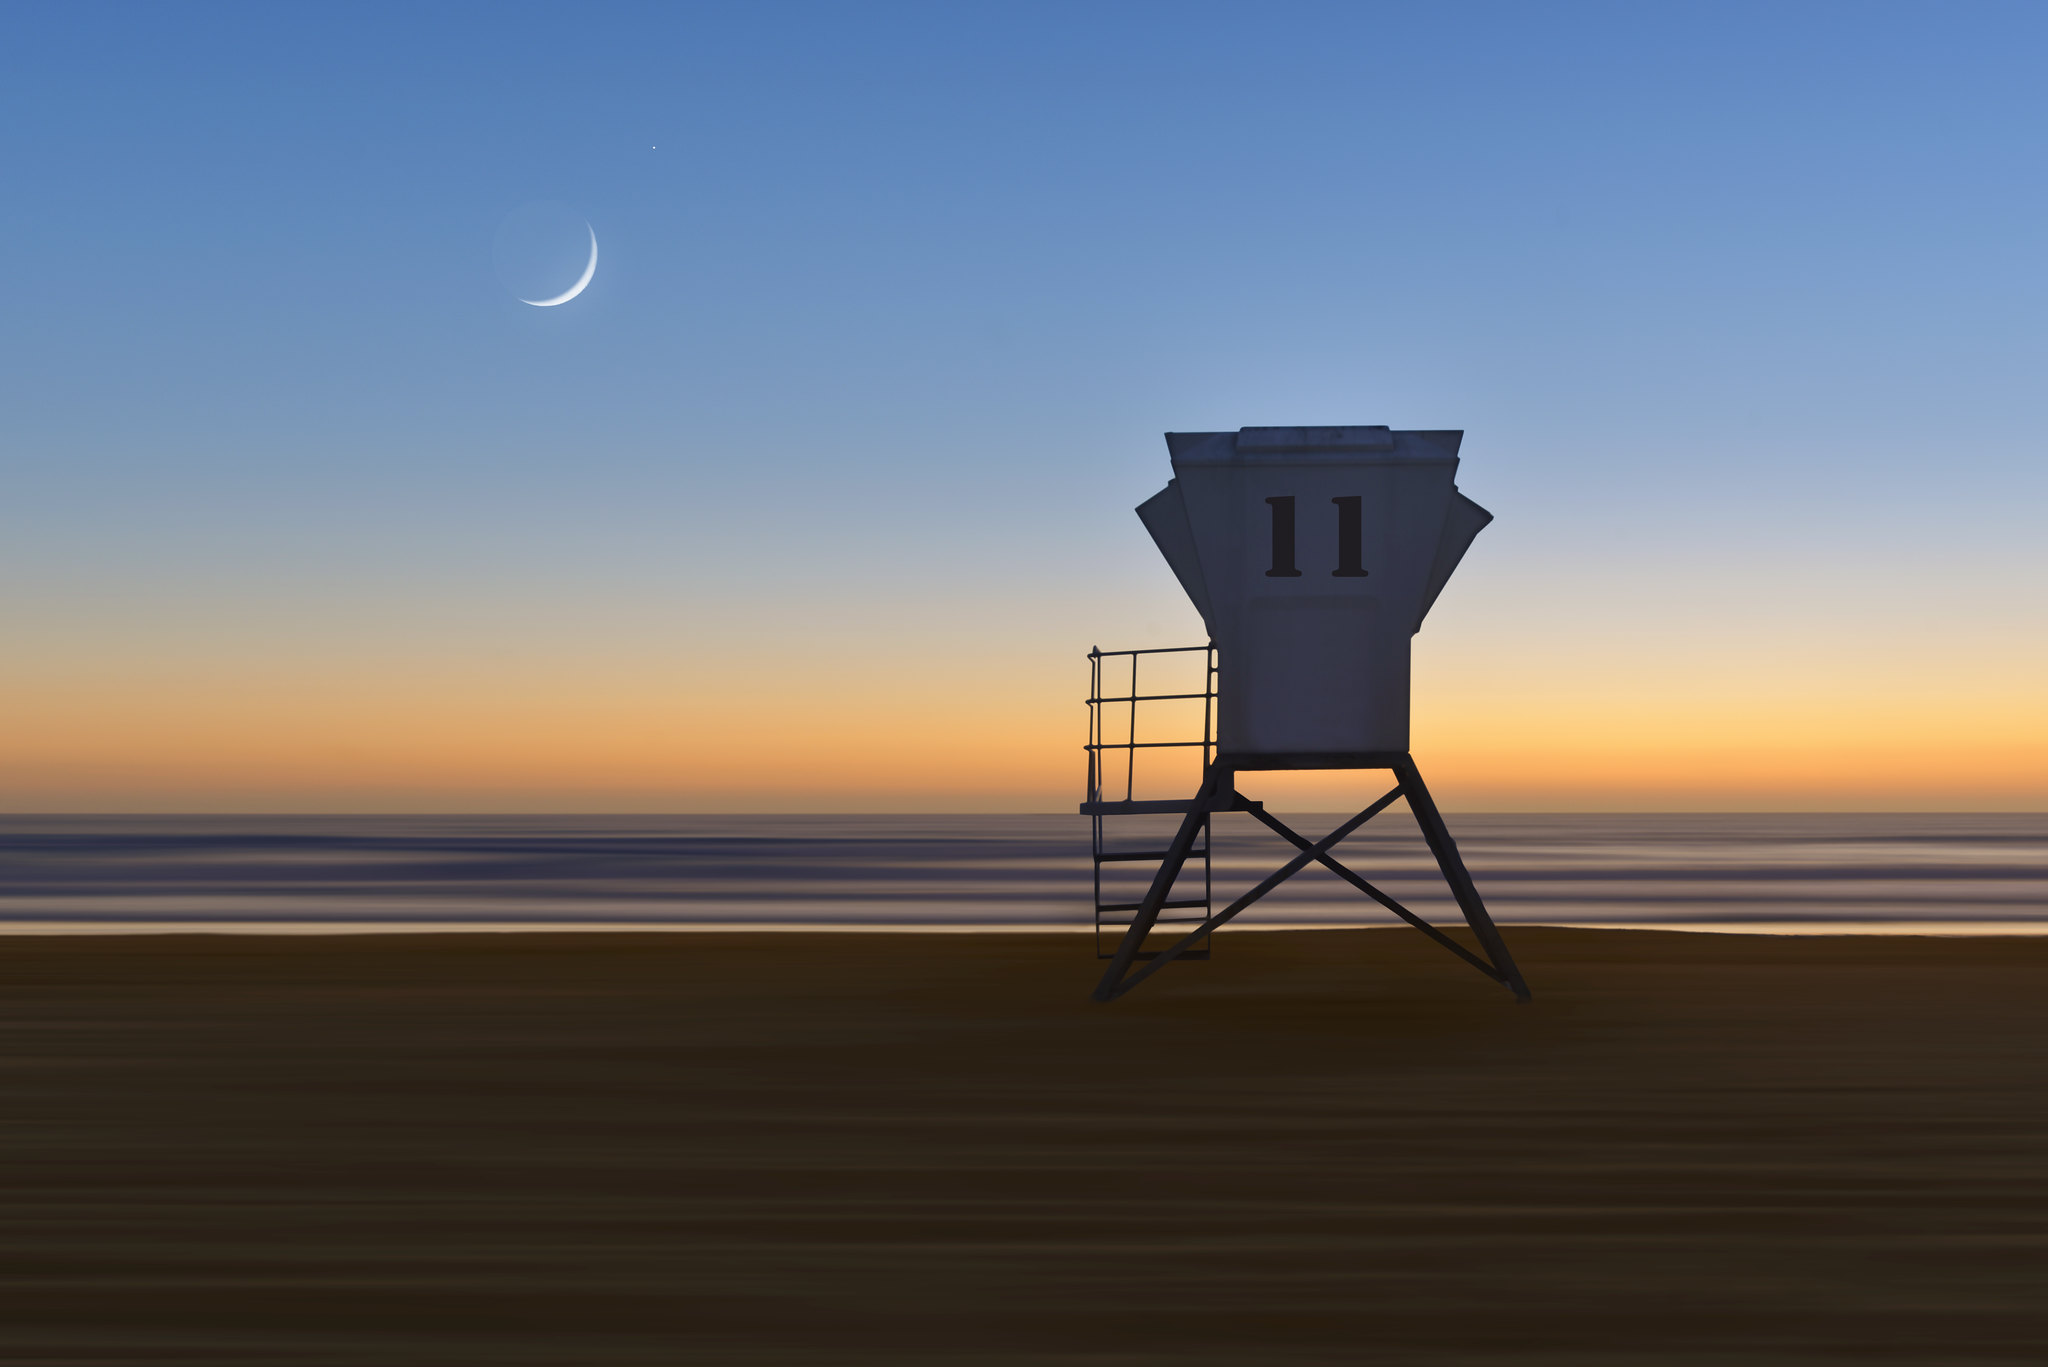 Mission Beach Lifeguard Tower